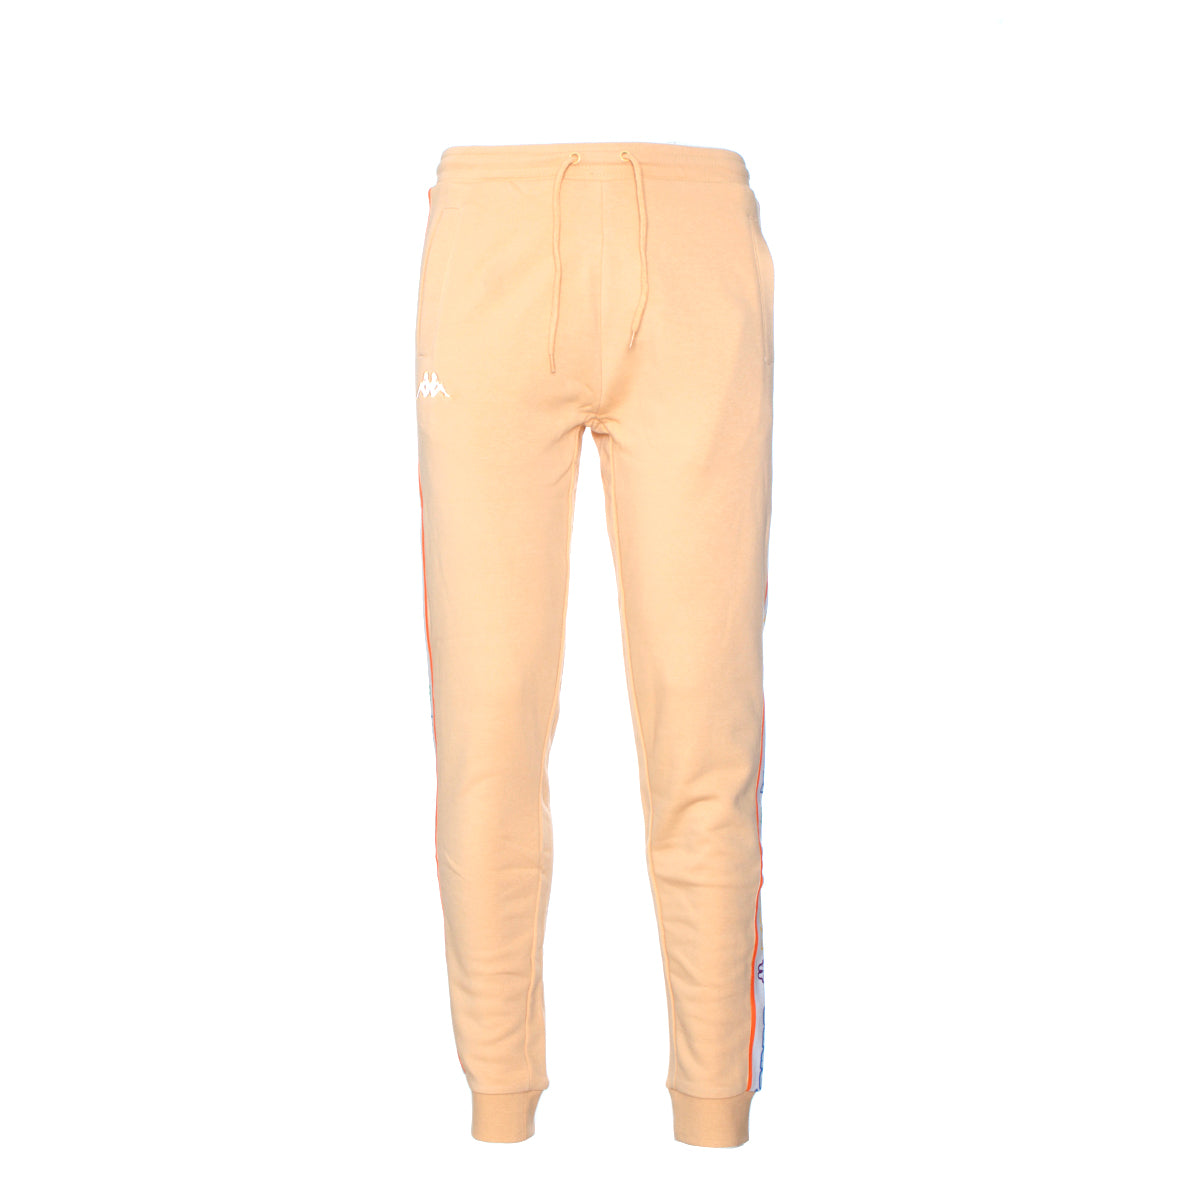 Kappa Aniradi Logo Tape Men's Sweatpants Beige